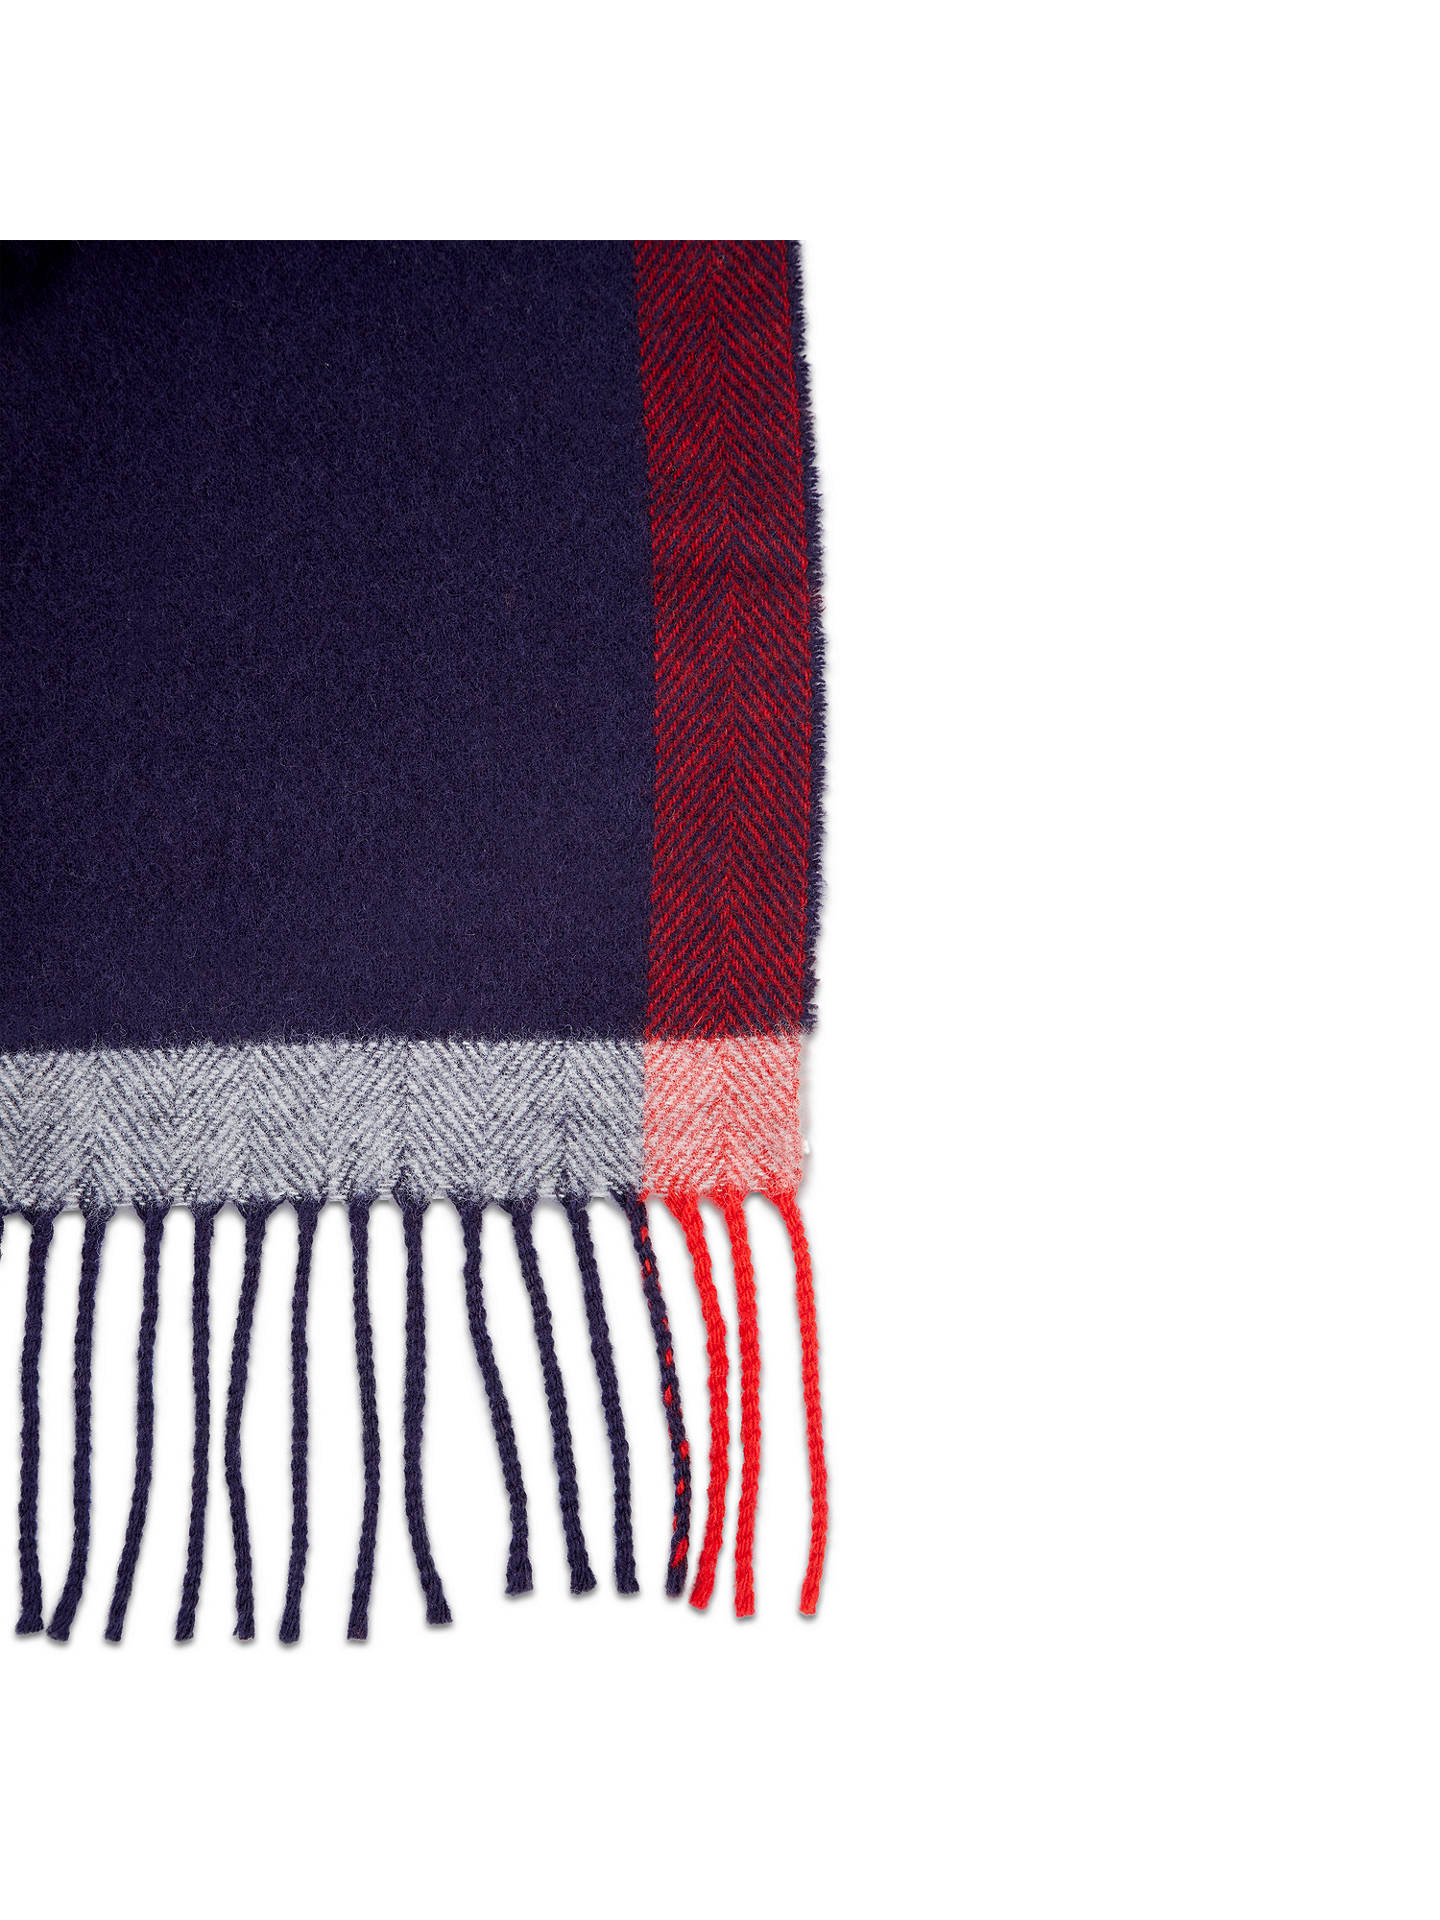 Buy Jaeger Wool Cashmere Border Herringbone Scarf, Navy Online at johnlewis.com